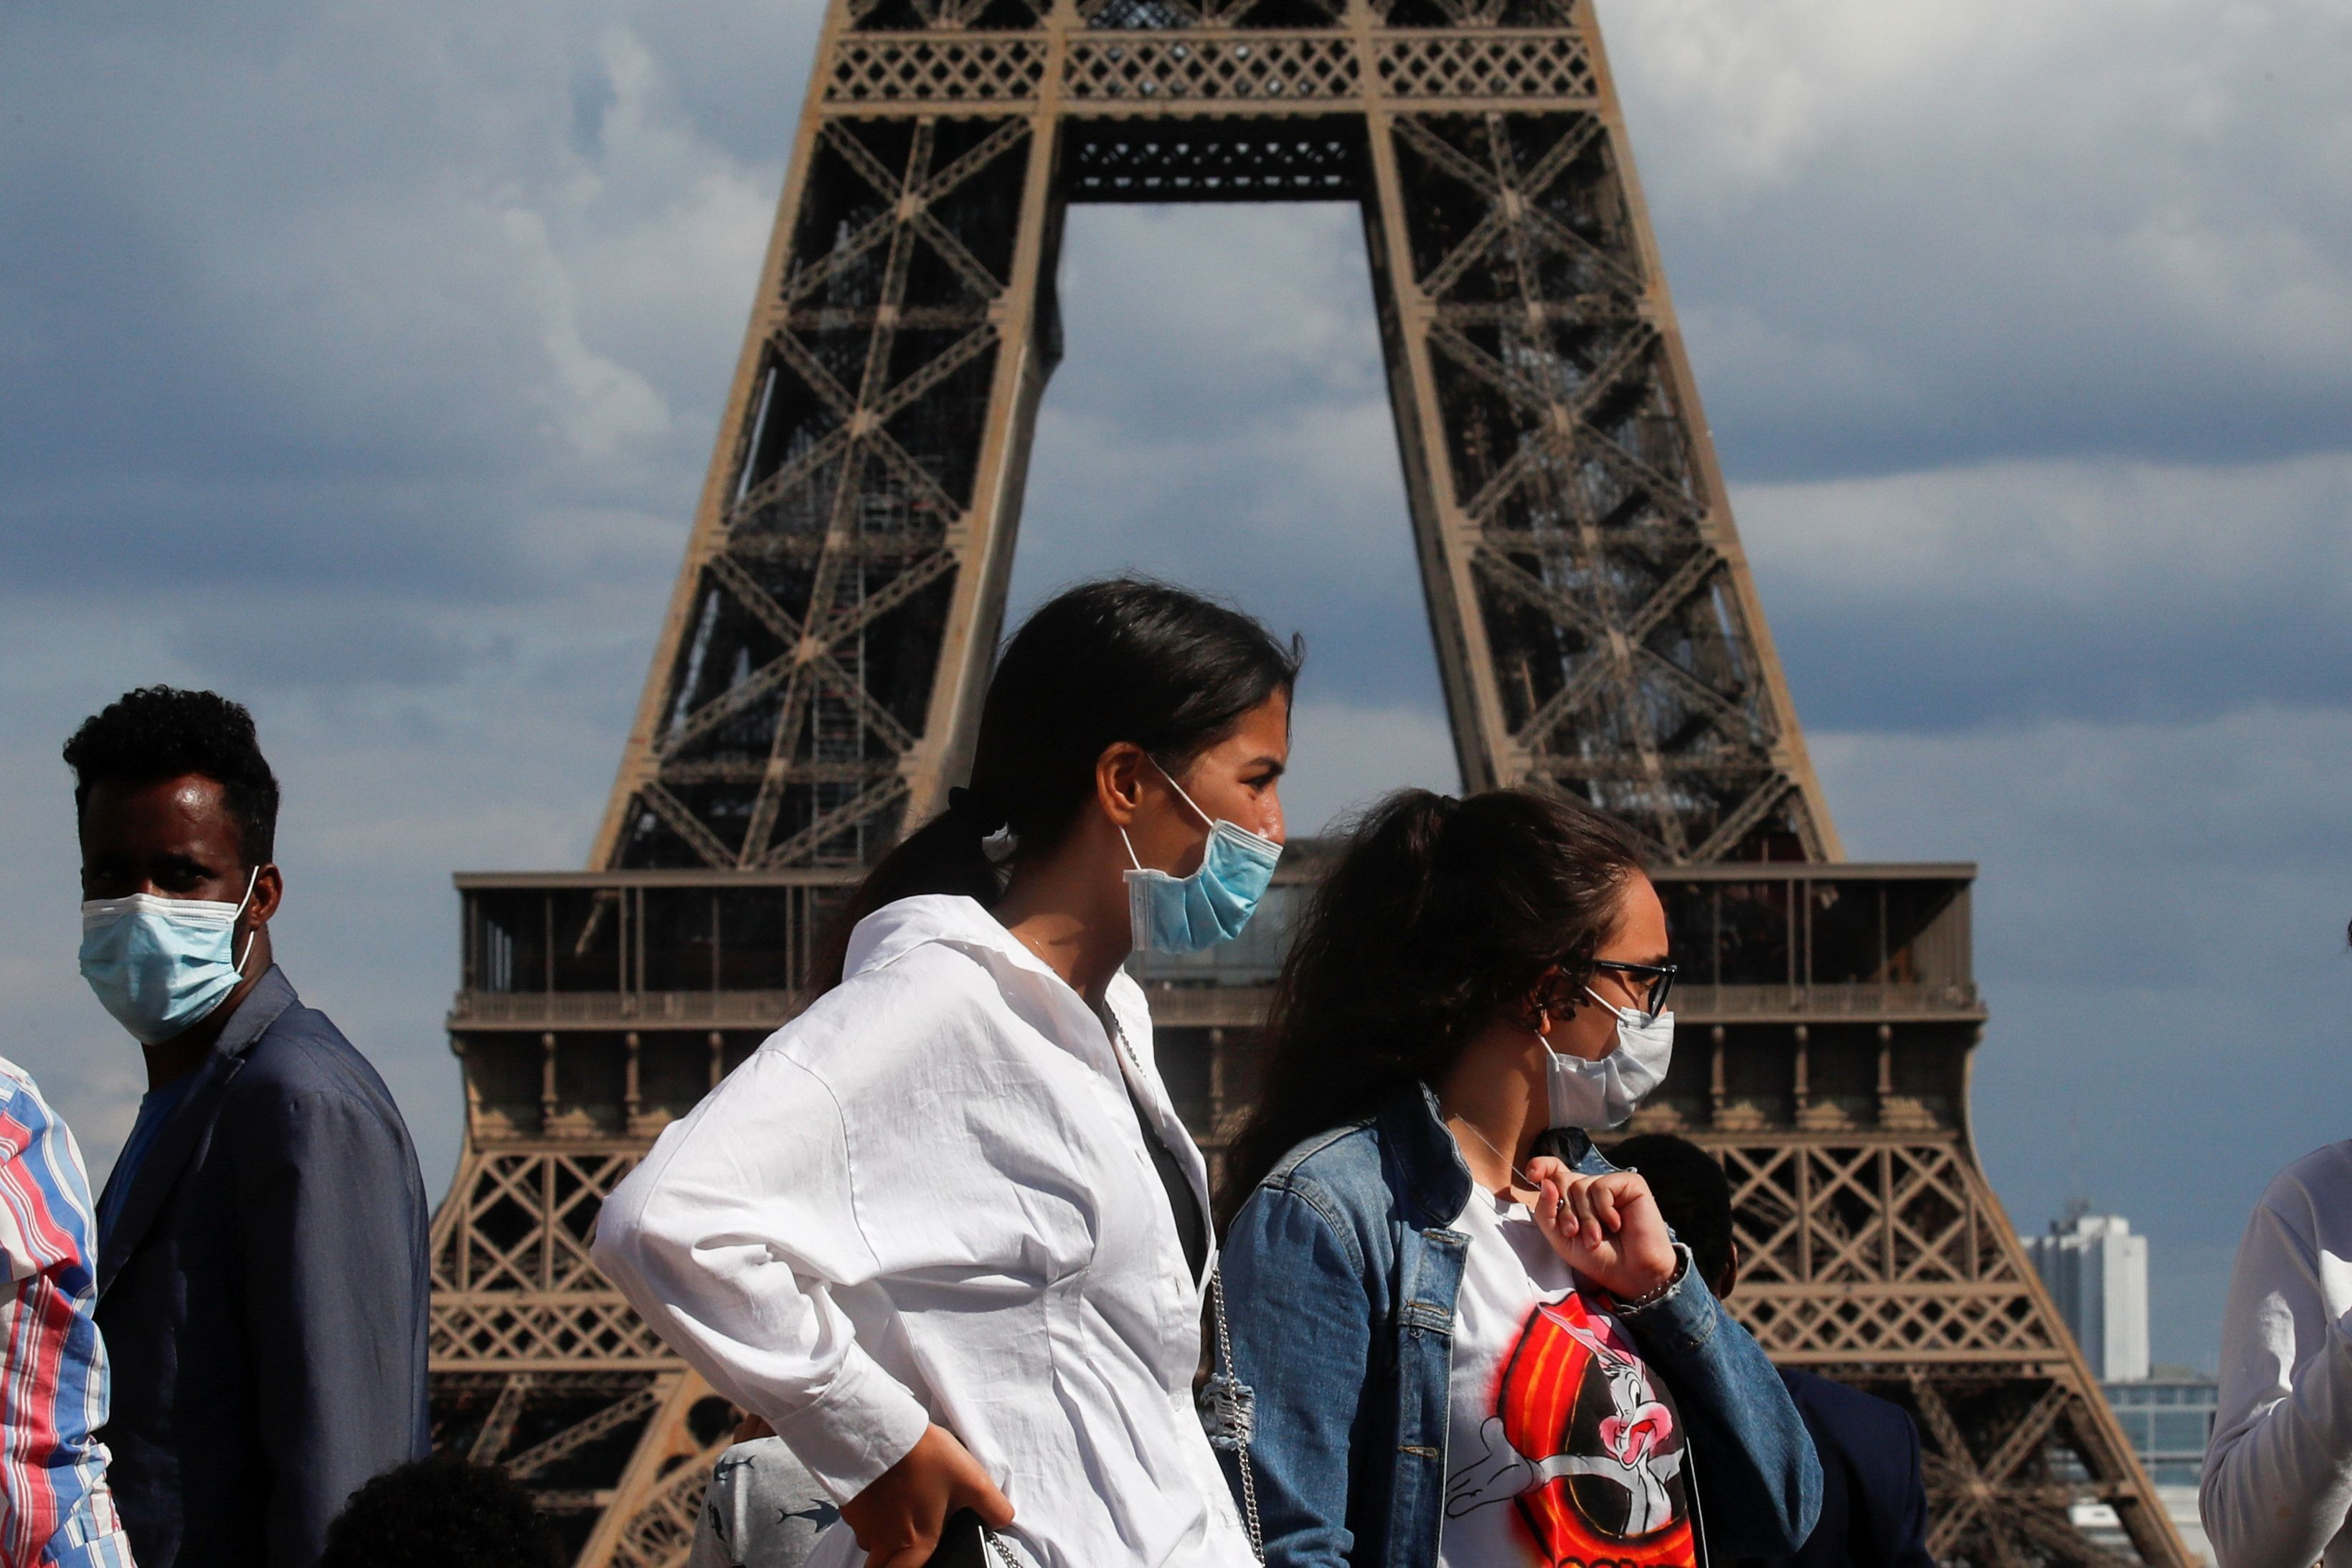 People wearing protective face masks walk at the Trocadero square near the Eiffel Tower in Paris as France reinforces mask-wearing as part of efforts to curb a resurgence of the coronavirus disease (COVID-19) across the country, August 3, 2020. REUTERS/Gonzalo Fuentes - RC2H6I9W6X3Y